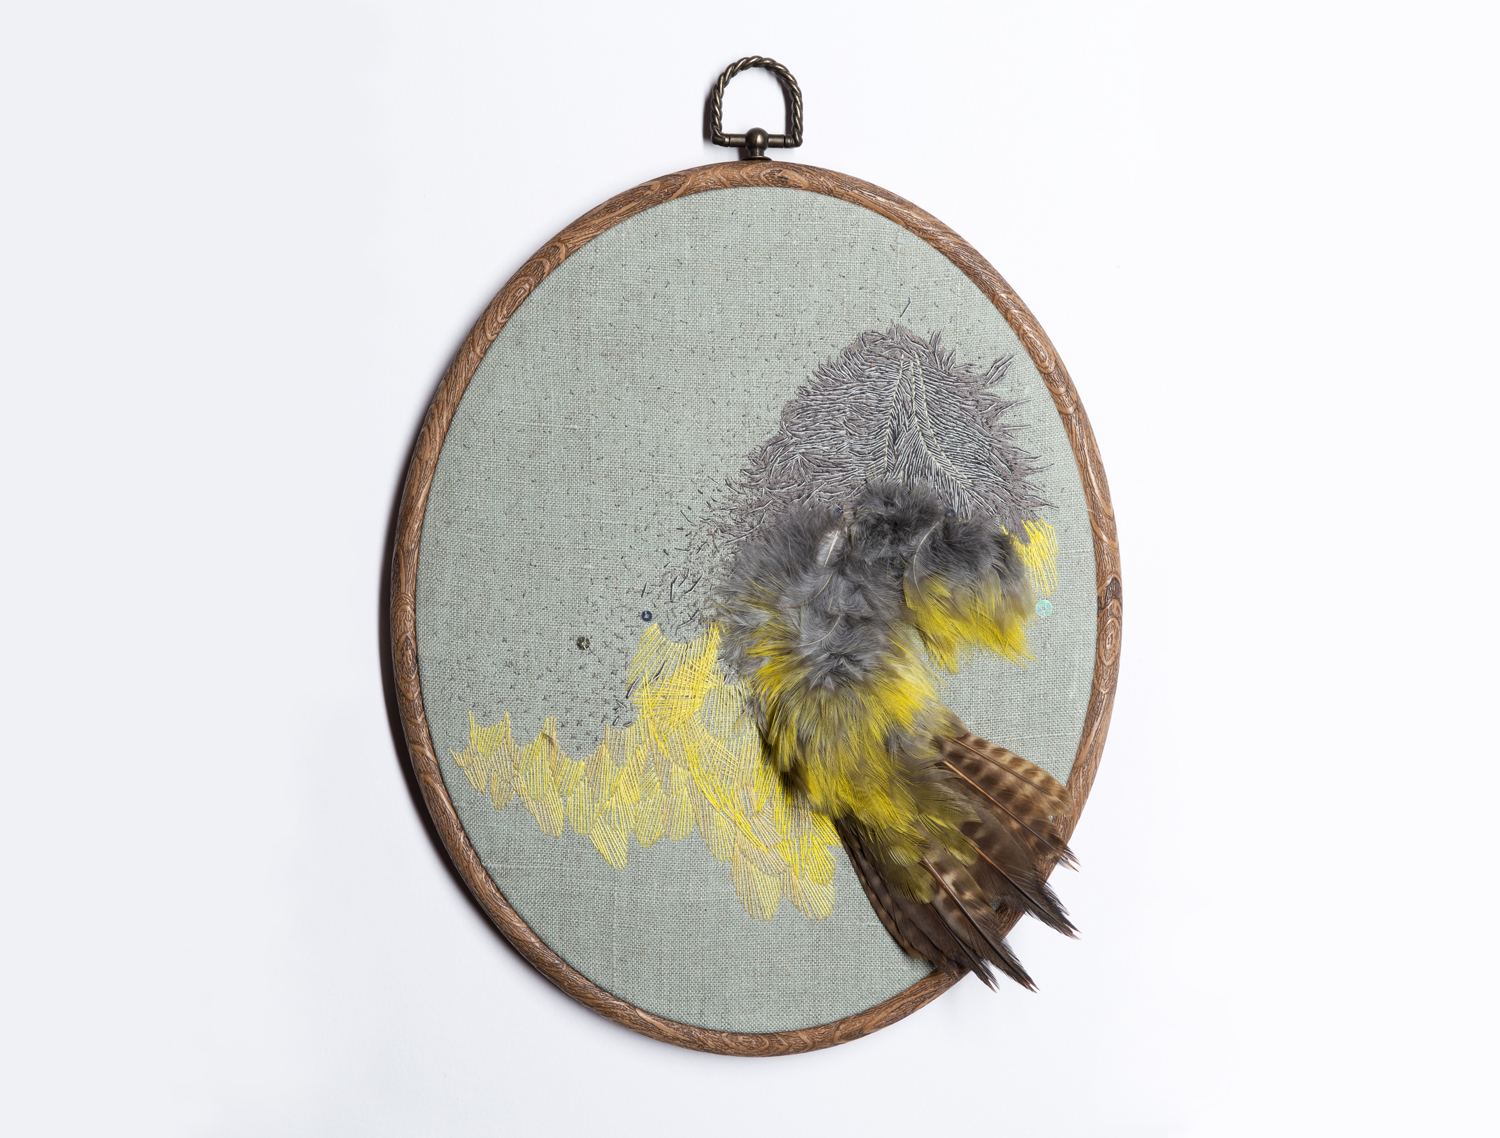 'Plumose' (2013) Hand embroidery and vintage taxidermy on linen, readymade embroidery hoop, 27cm x 22cm.